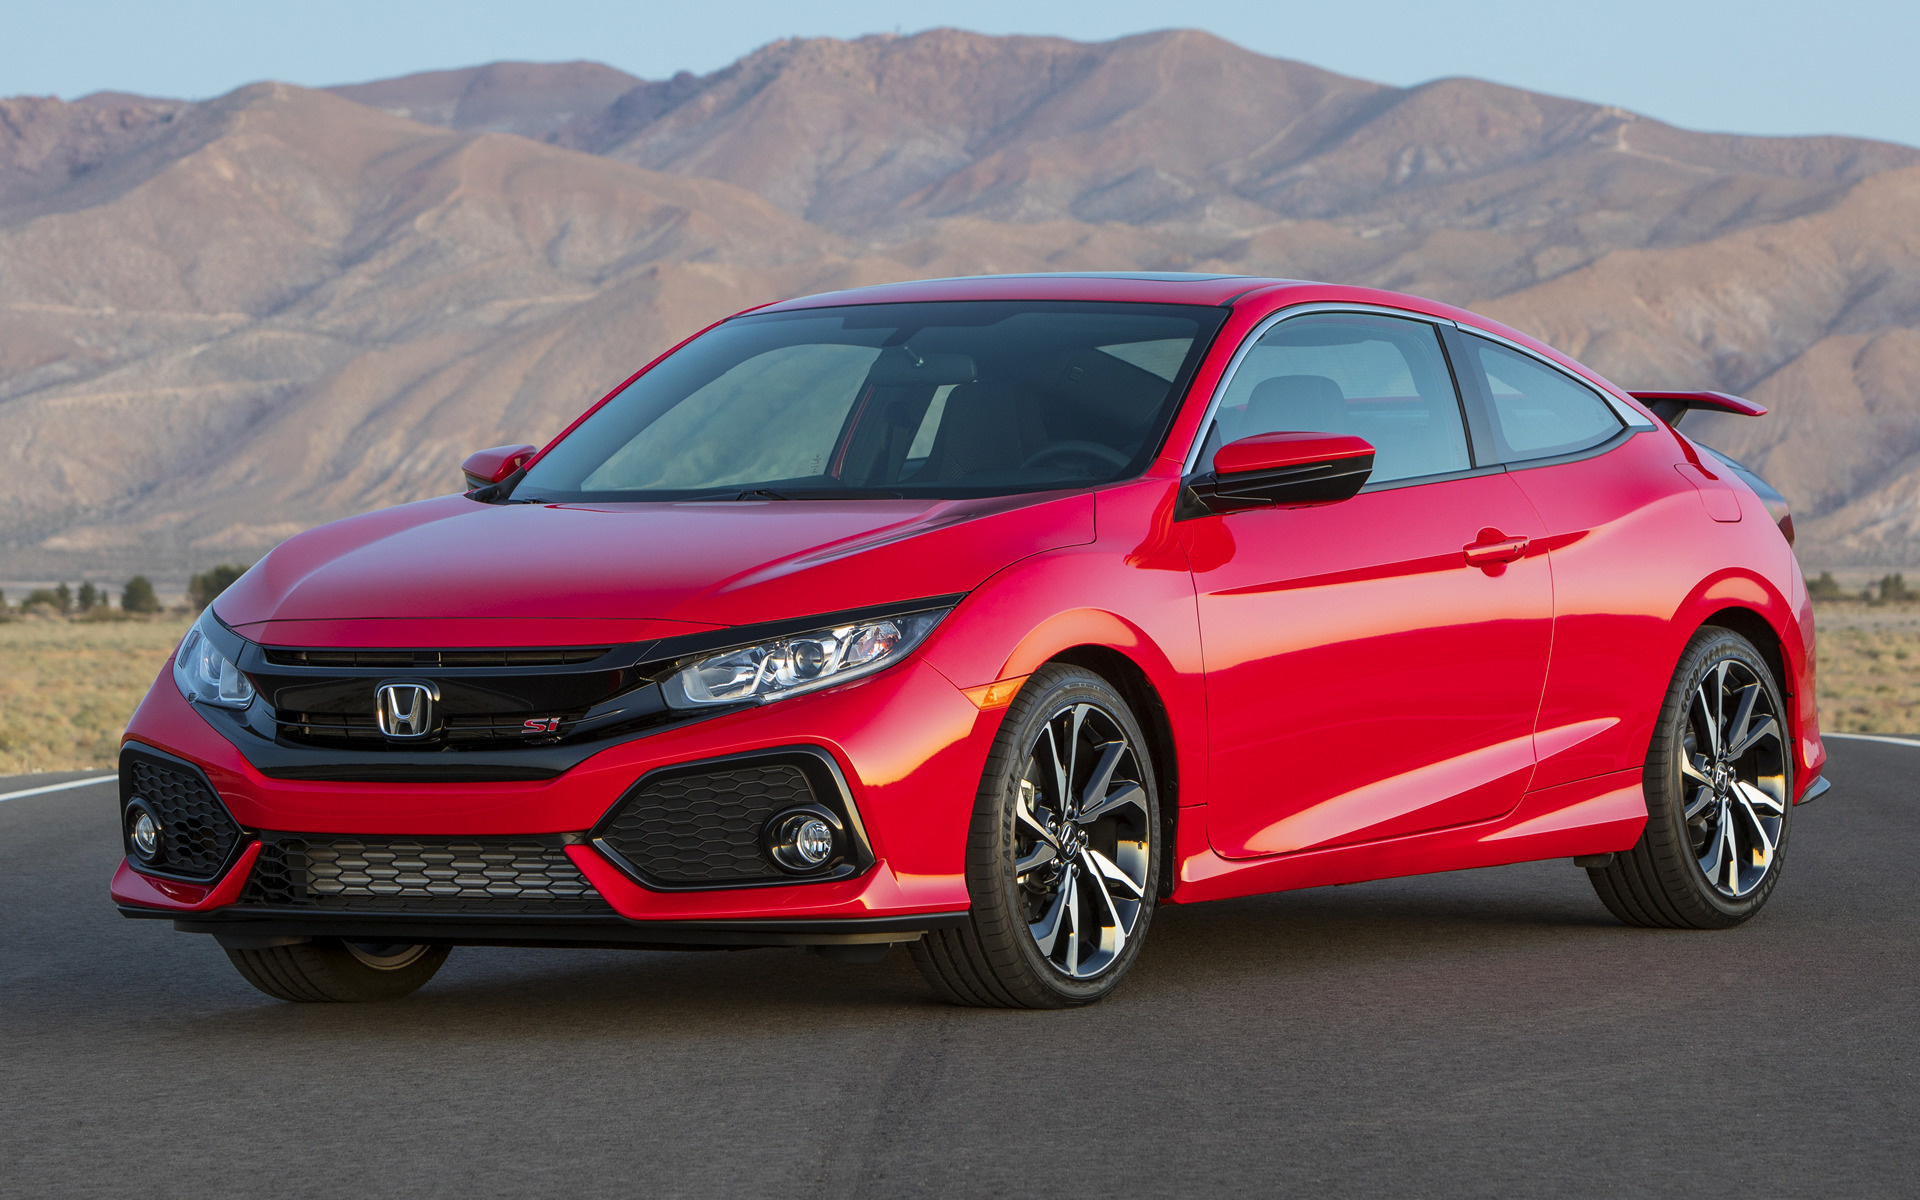 Honda Phone Wallpapers 2017 Honda Civic Si Coupe Us Wallpapers And Hd Images Car Pixel